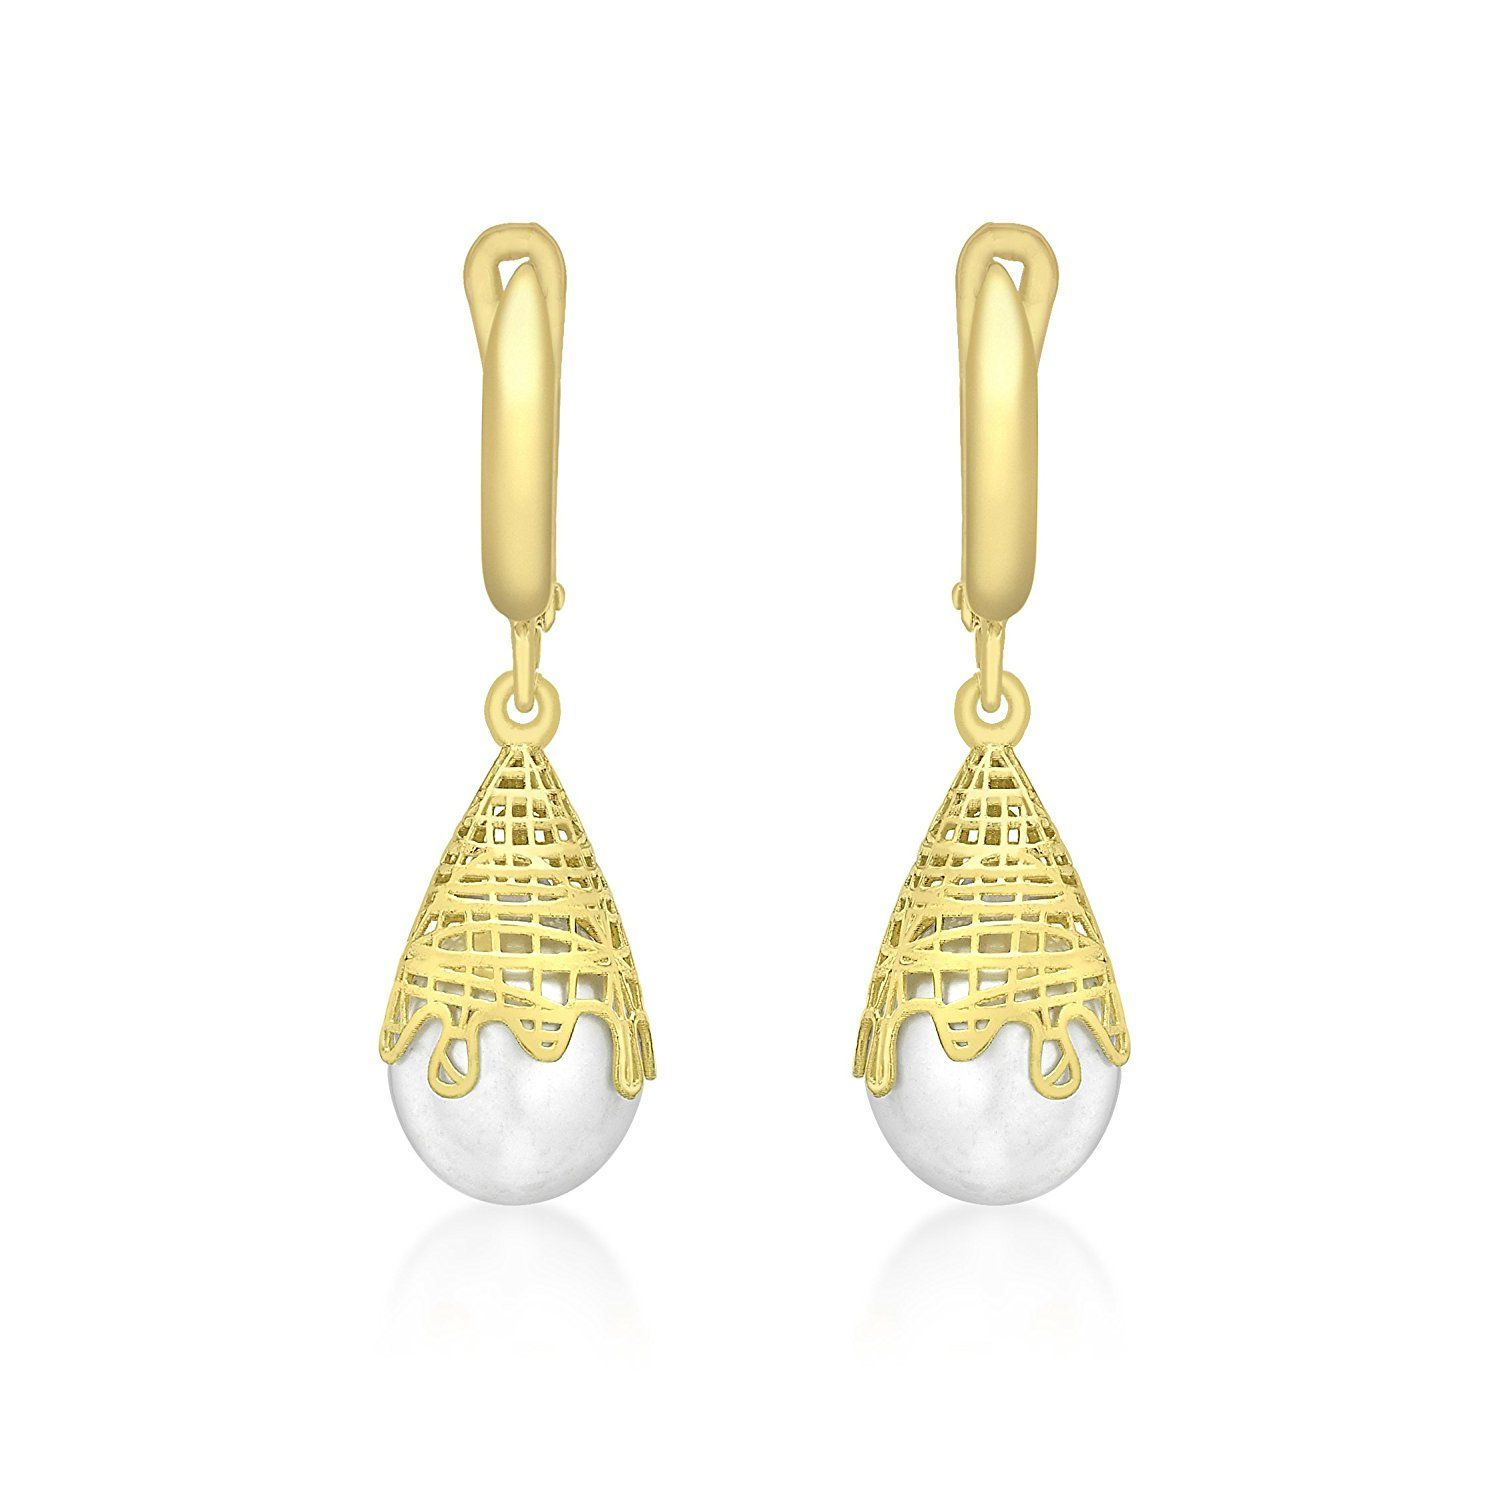 Carissima Gold 9 ct Yellow Gold Leaf Drop Earrings CdICVE